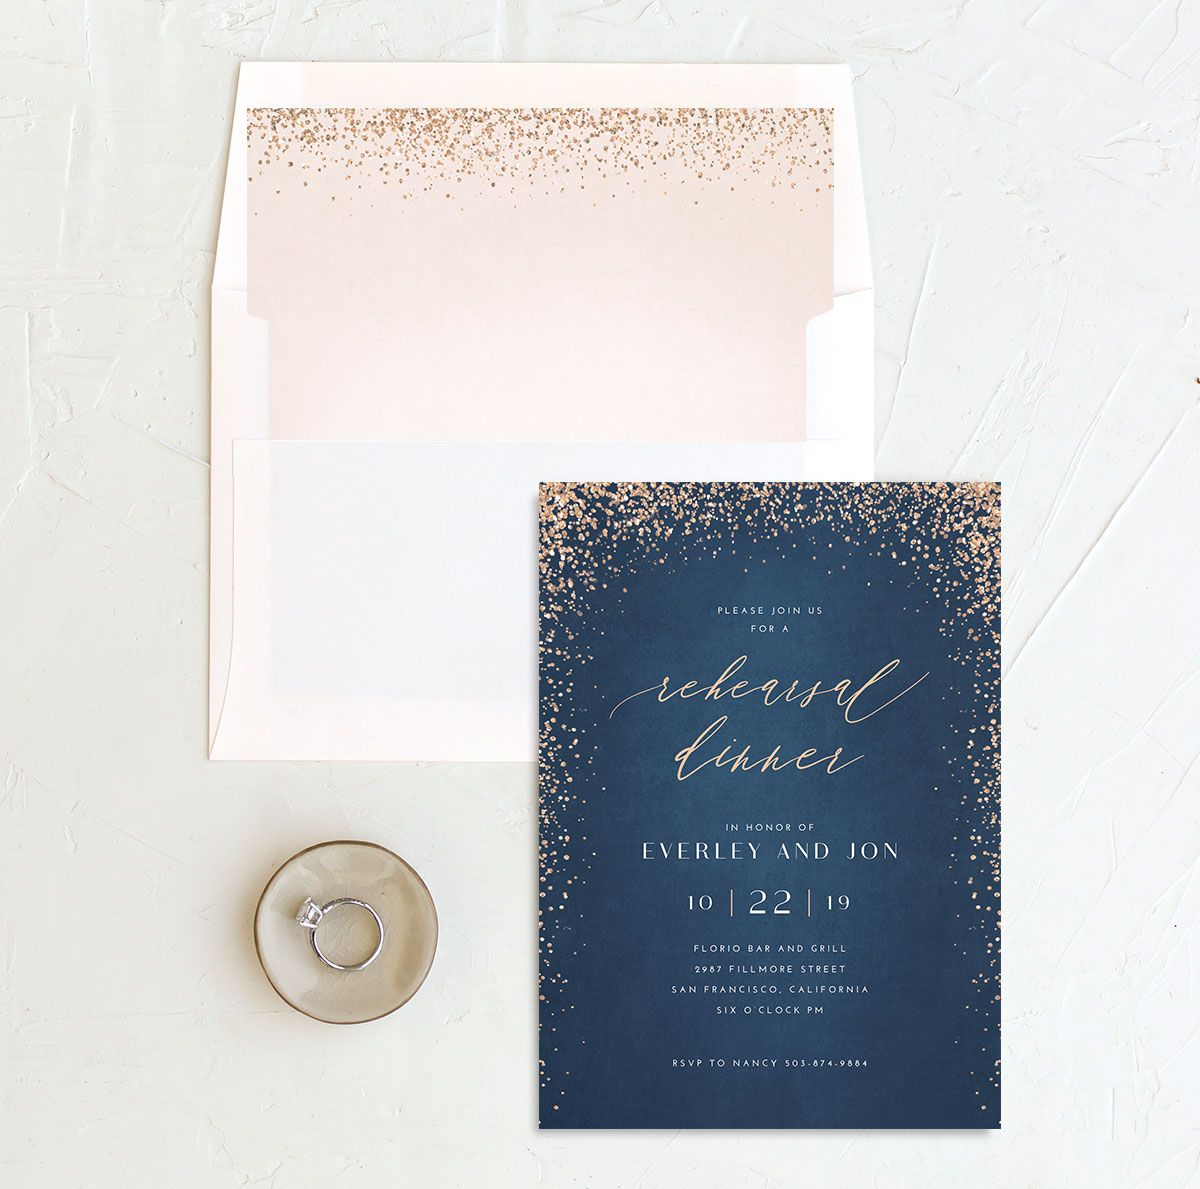 Sparkling Romance rehearsal dinner invitation blue with liner